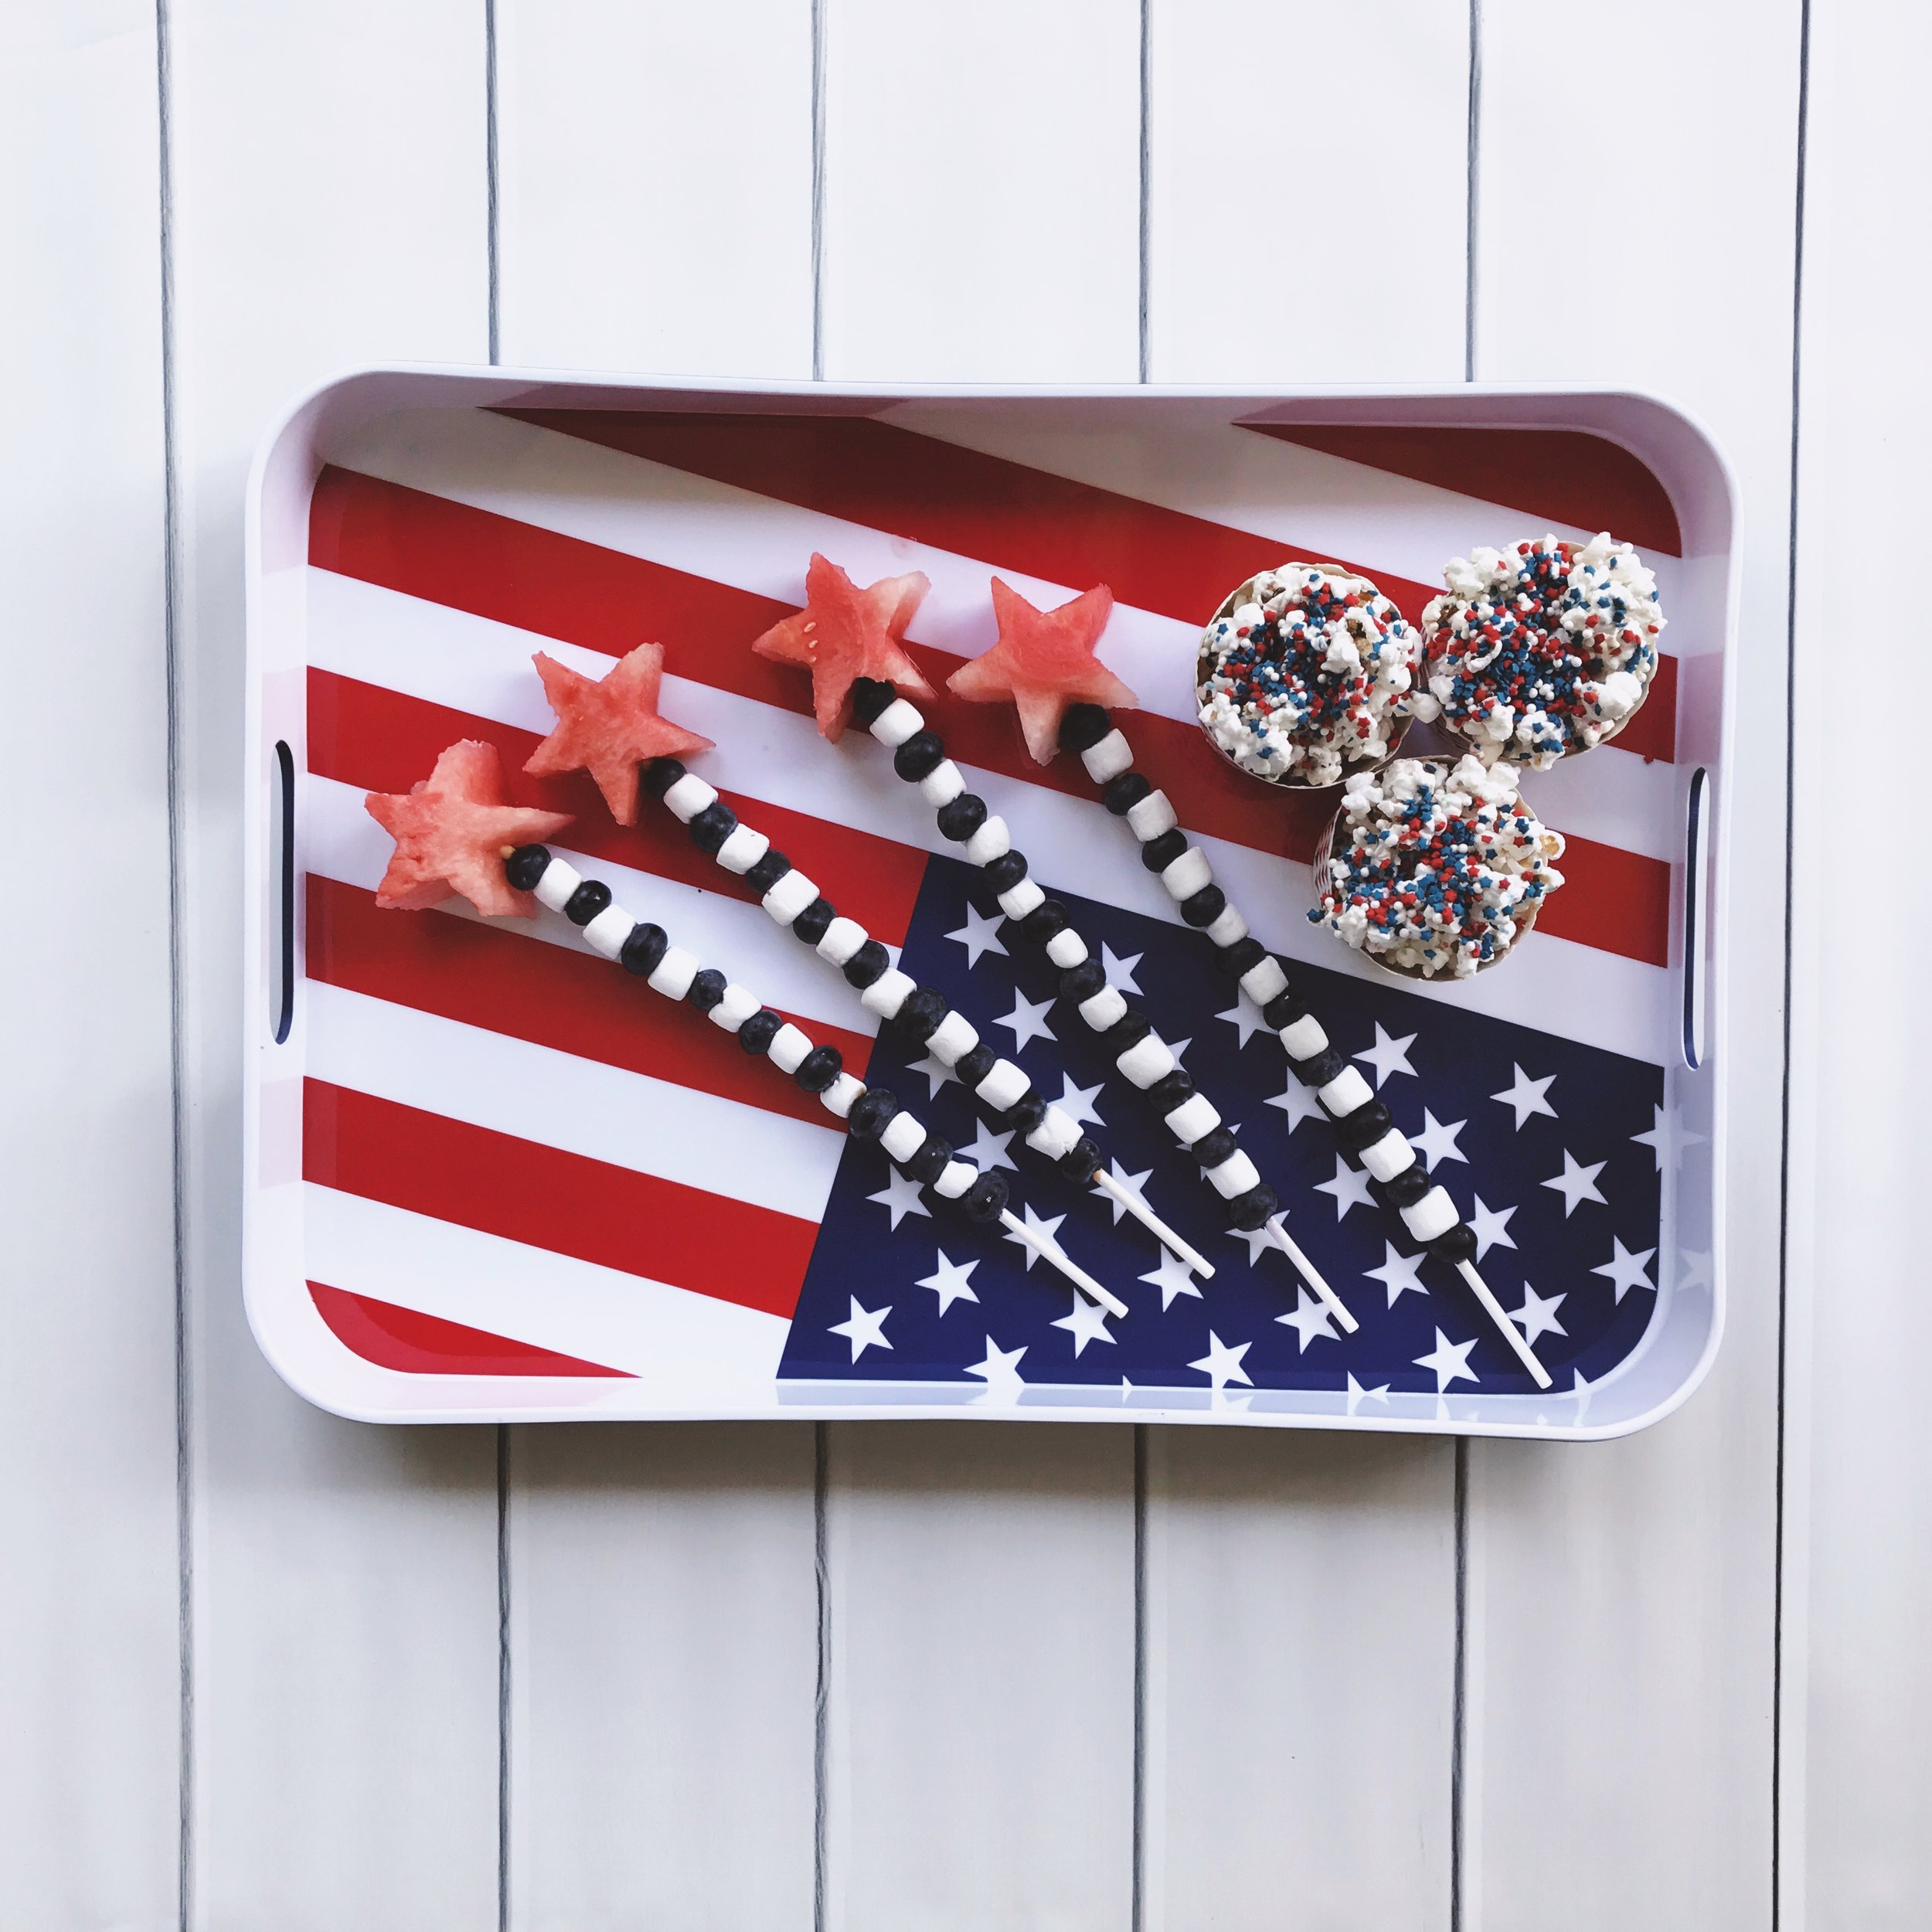 Here are my favorite patriotic summer treats that are so EASY to make!